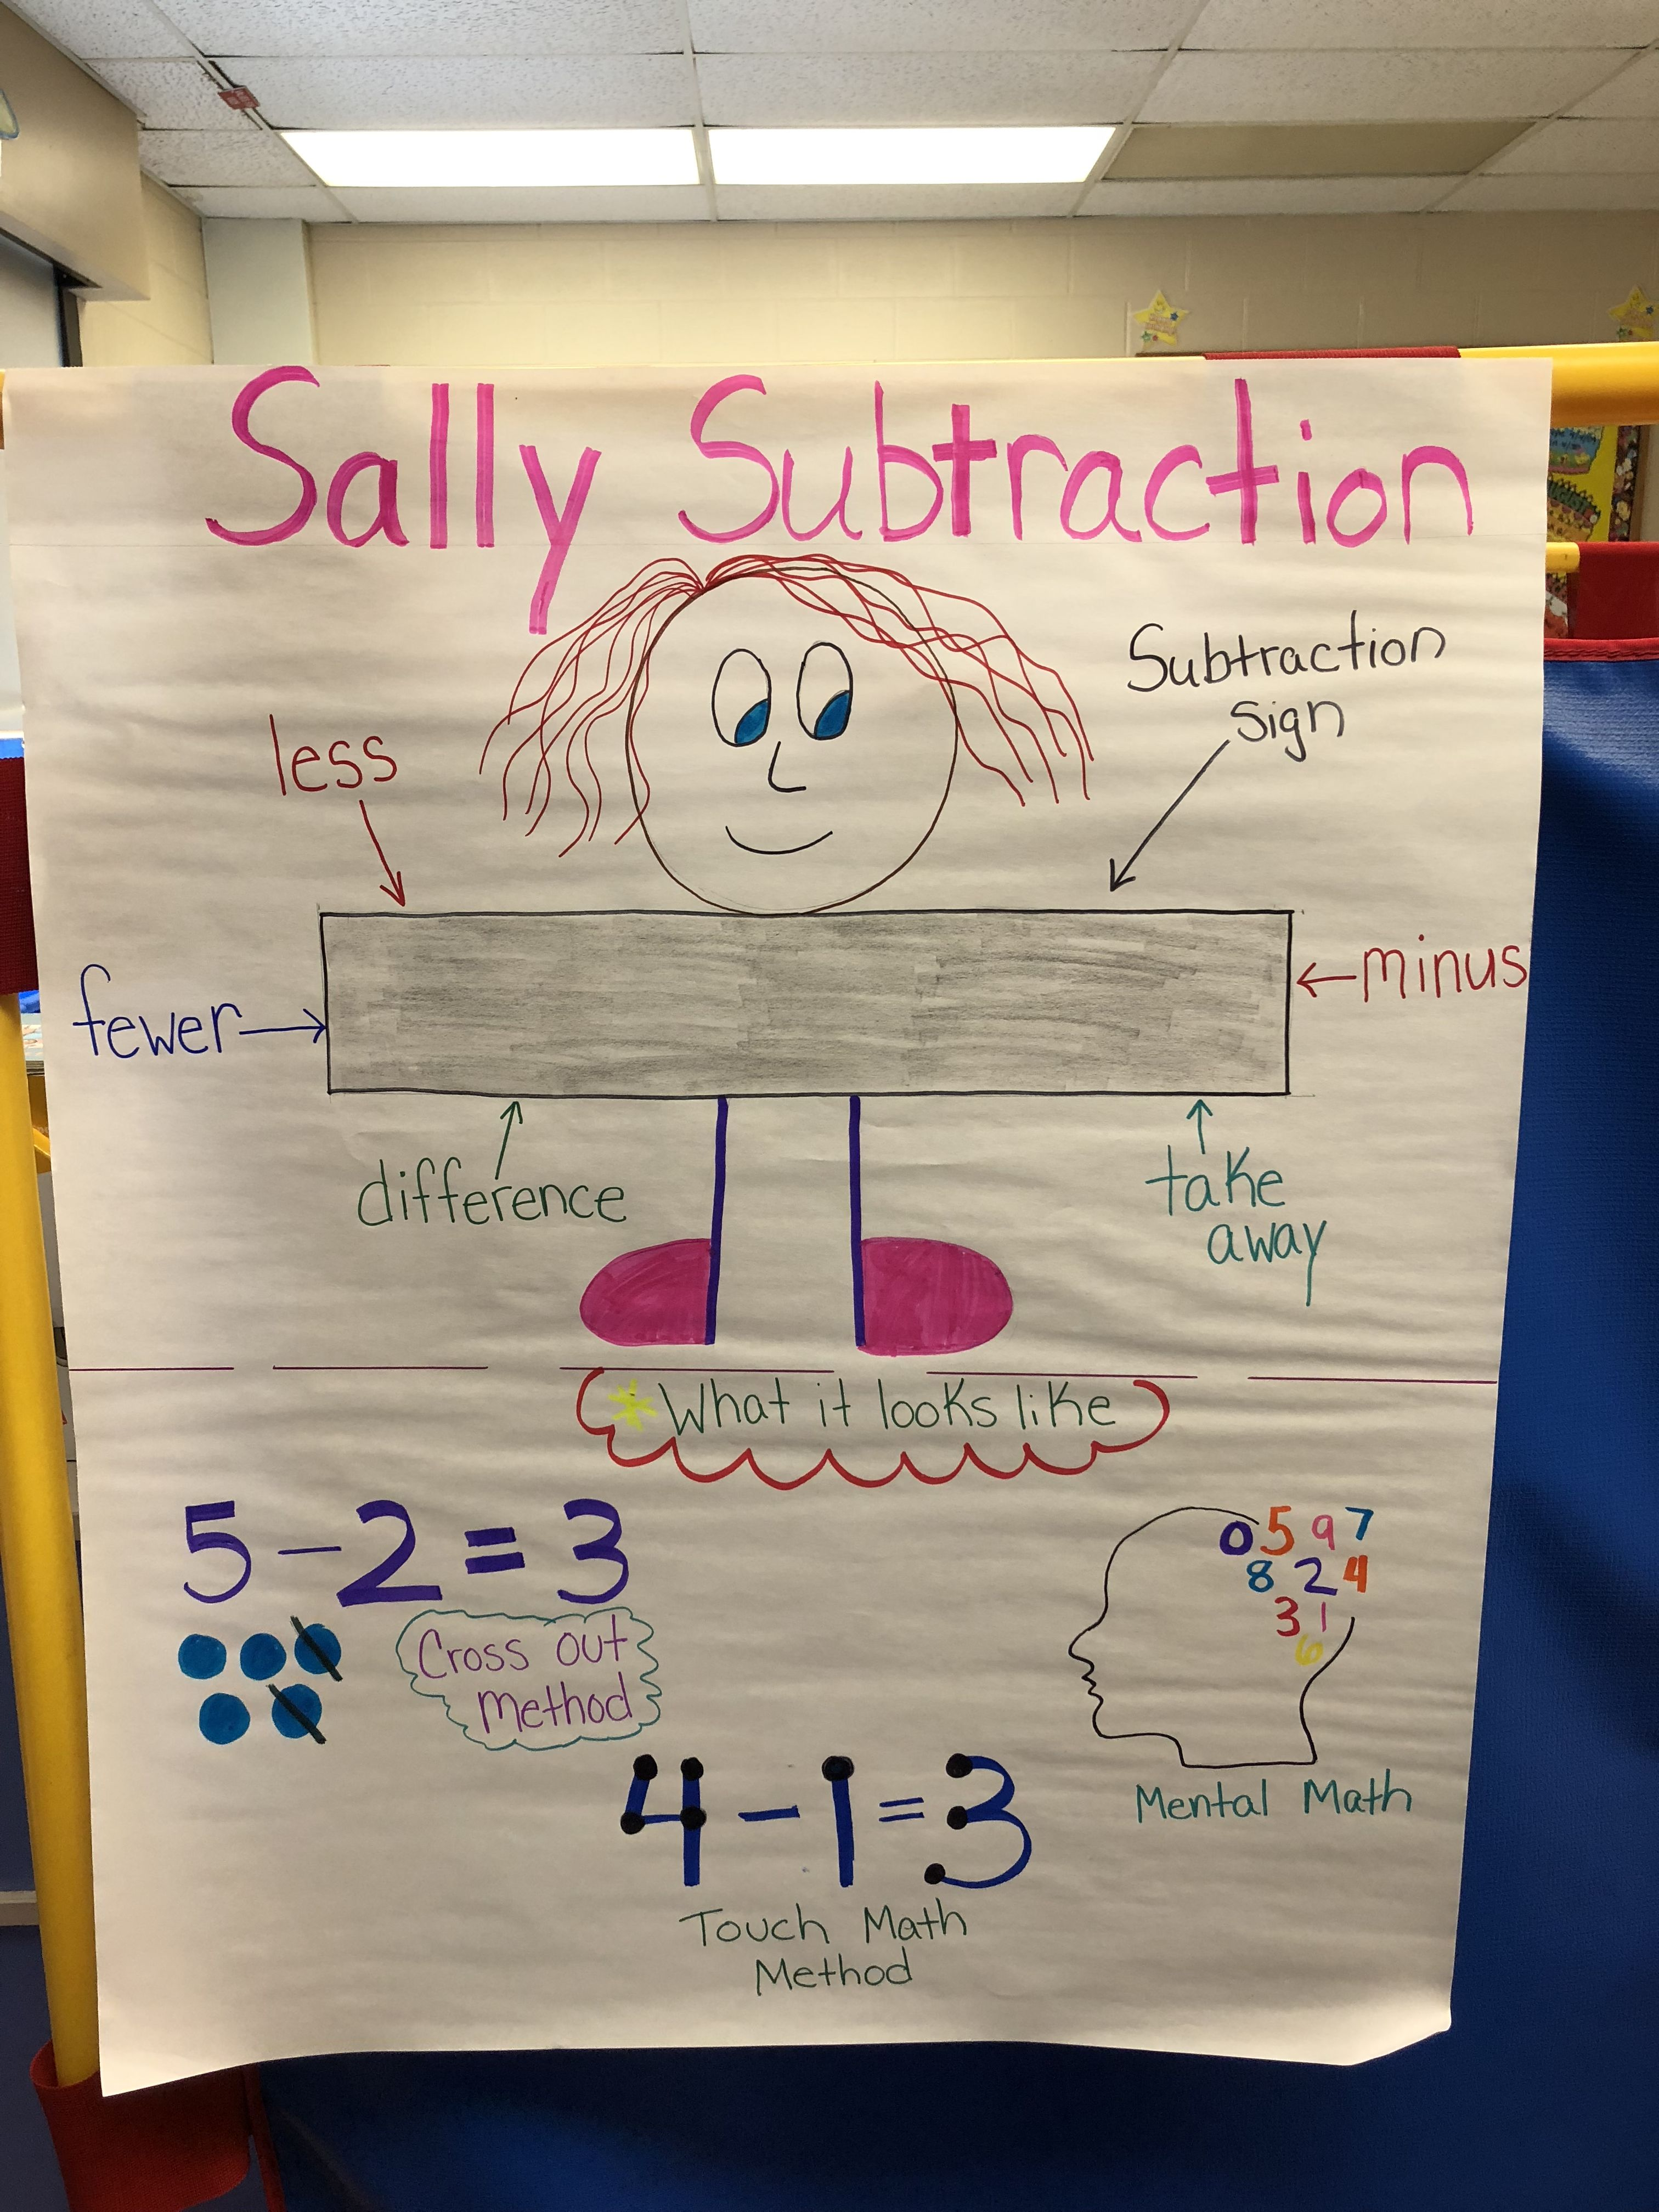 Sally Subtraction With Images